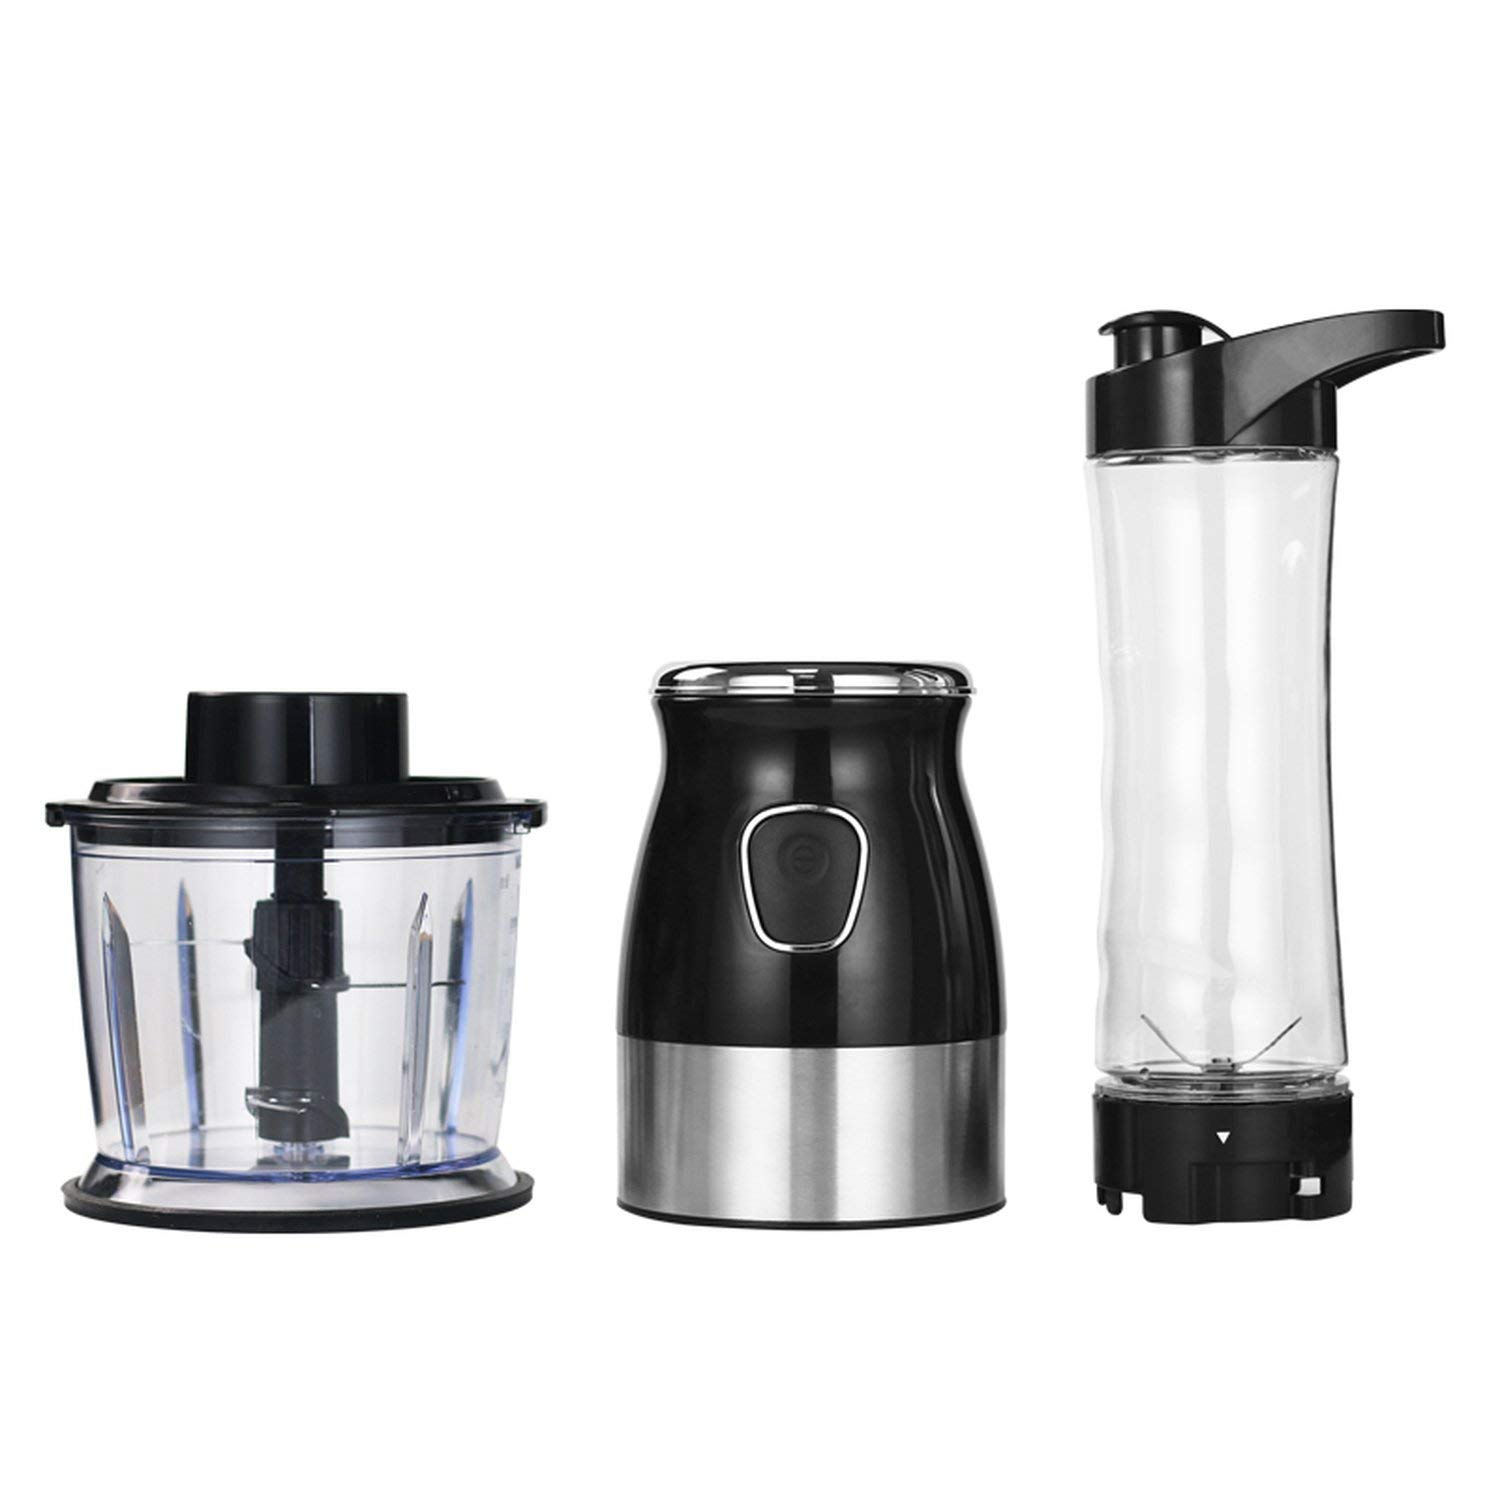 BPA FREE 500W Portable Personal Mixer Food Processor With Chopper Bowl 600ml Juicer Bottle Meat Grinder Baby Food Maker,Standard 2 in 1,AU Plug